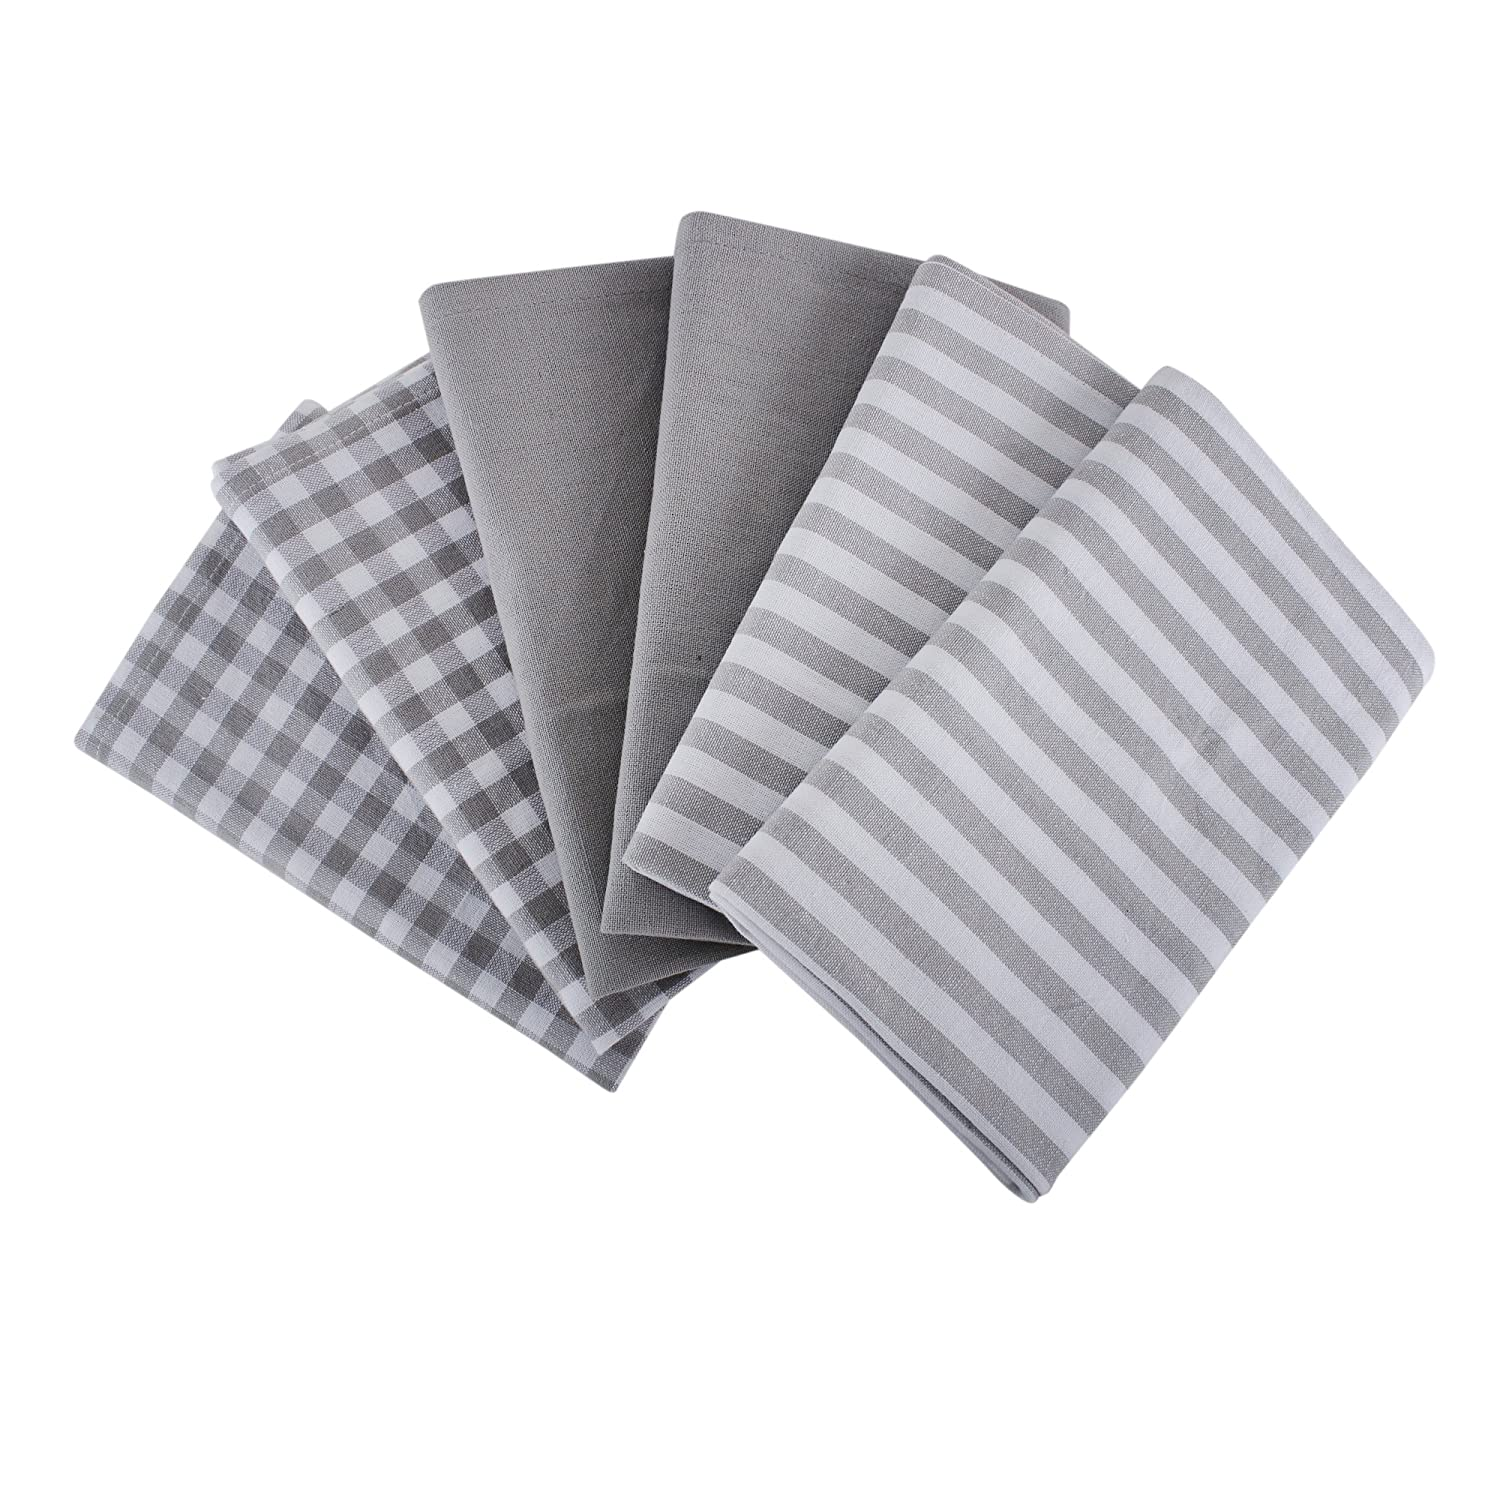 Cotton Kitchen Towels With Super Absorbent, Set Of 6 (18 X 28 Inches) 2 Pieces Grey & White Stripe,2 Pieces Grey & White Check And 2 Pieces Solid